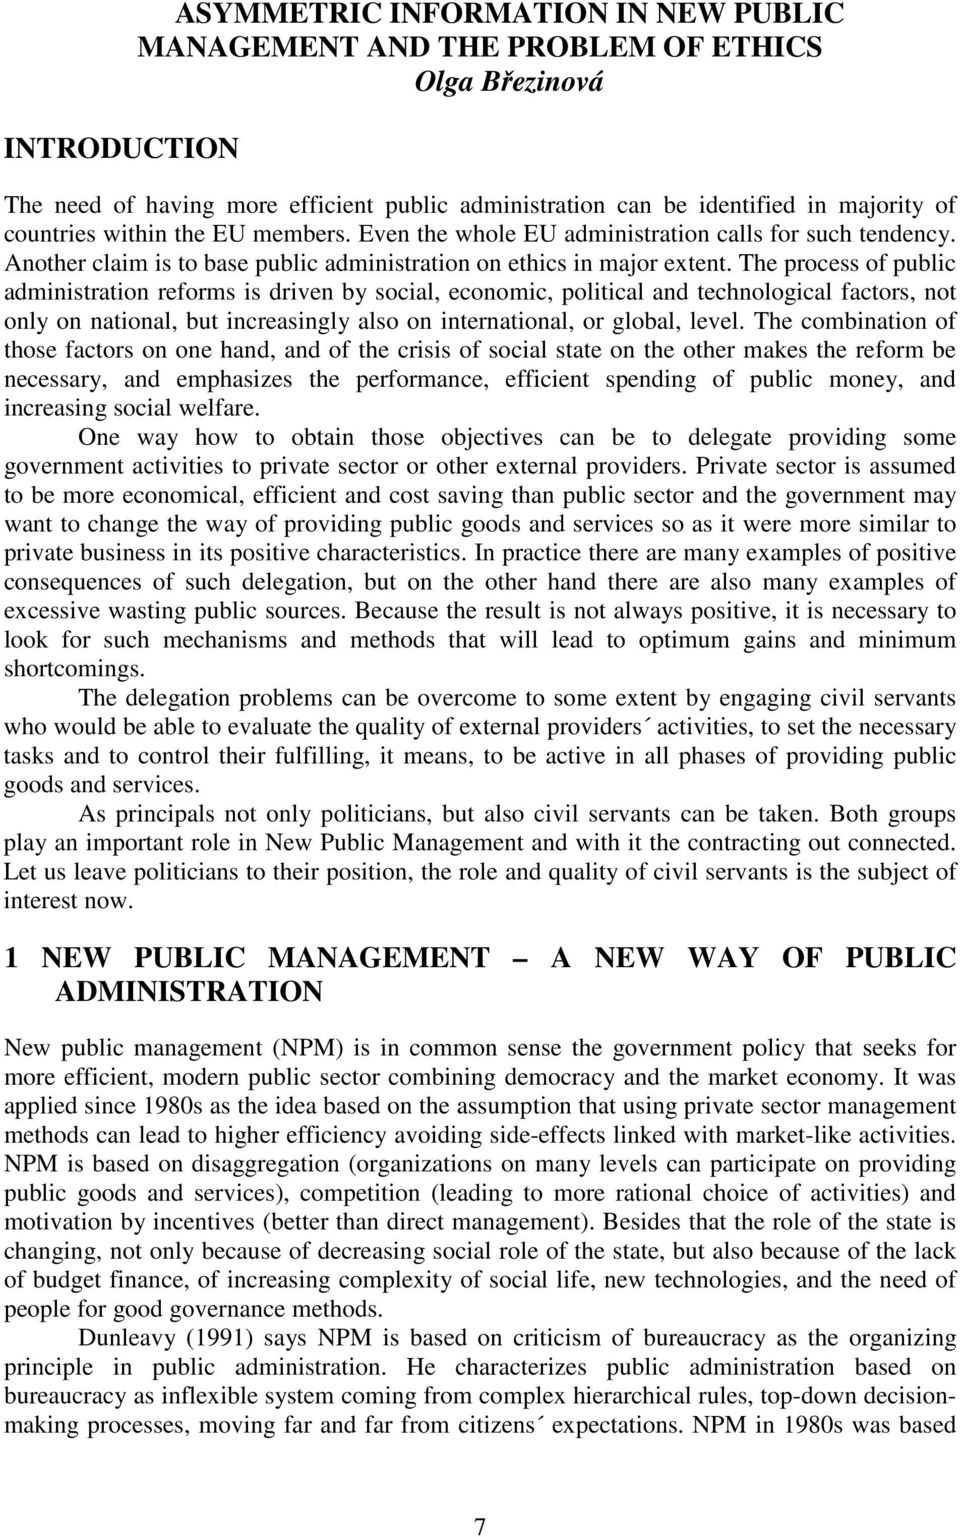 The process of public administration reforms is driven by social, economic, political and technological factors, not only on national, but increasingly also on international, or global, level.